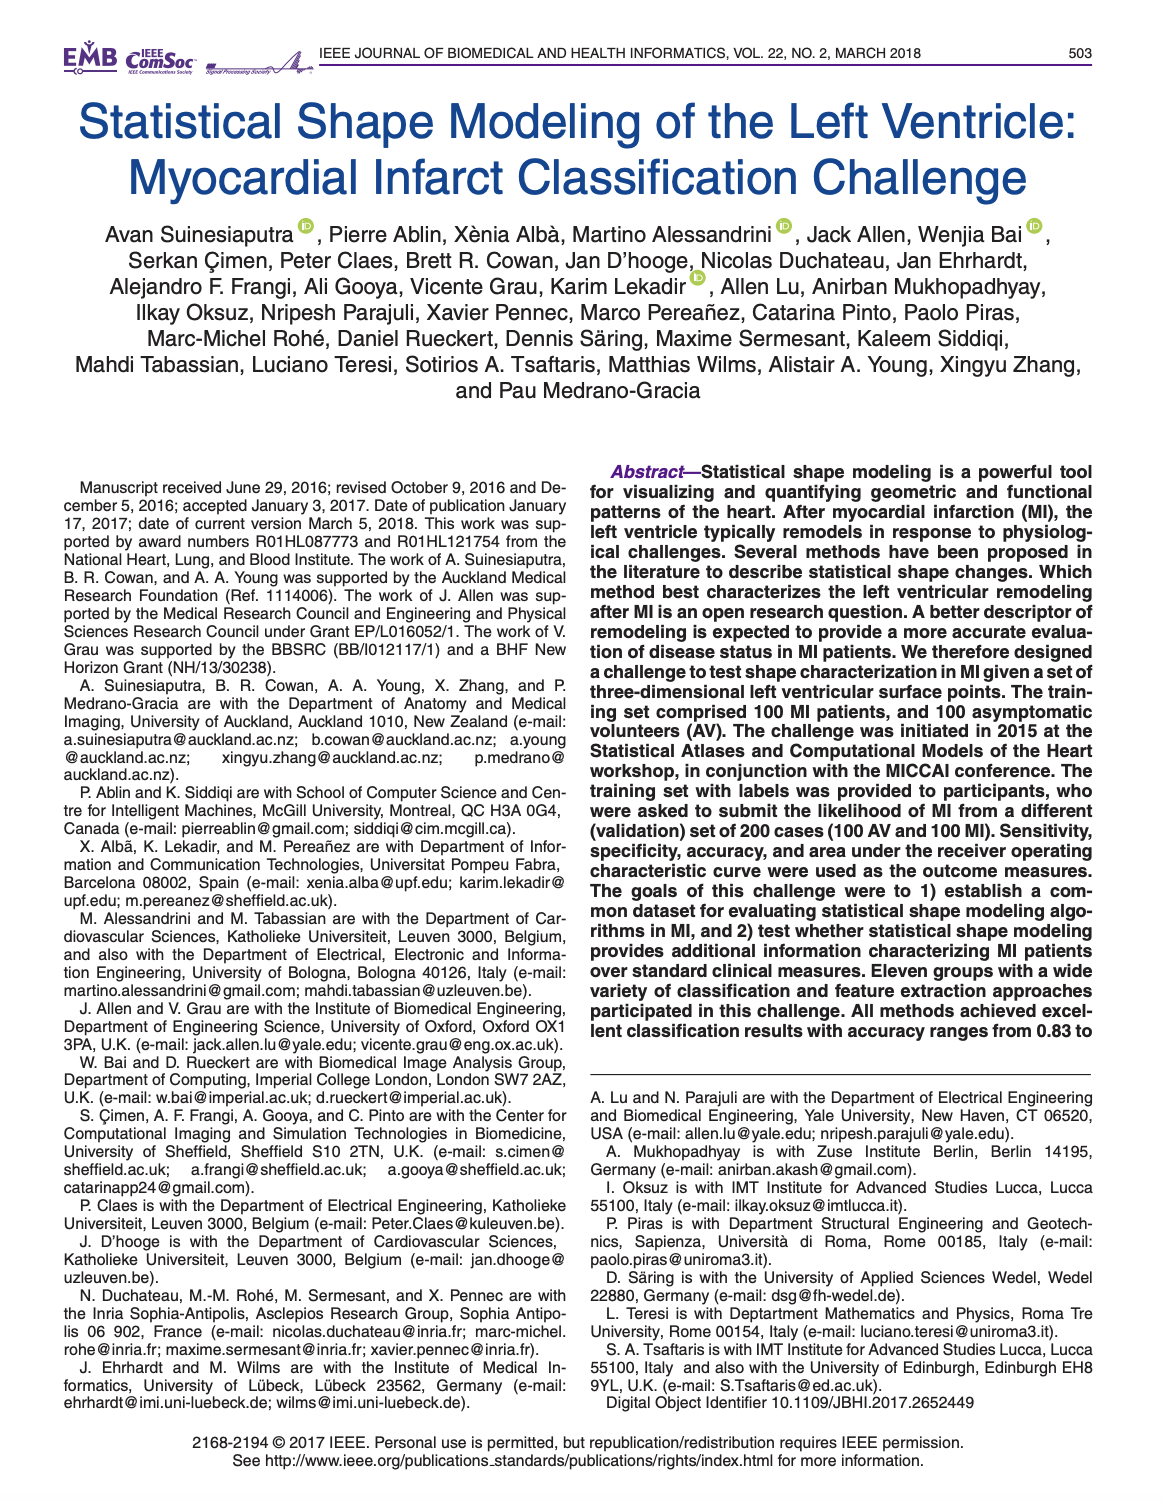 Statistical Shape Modeling of the Left Ventricle: Myocardial Infarct Classification Challenge